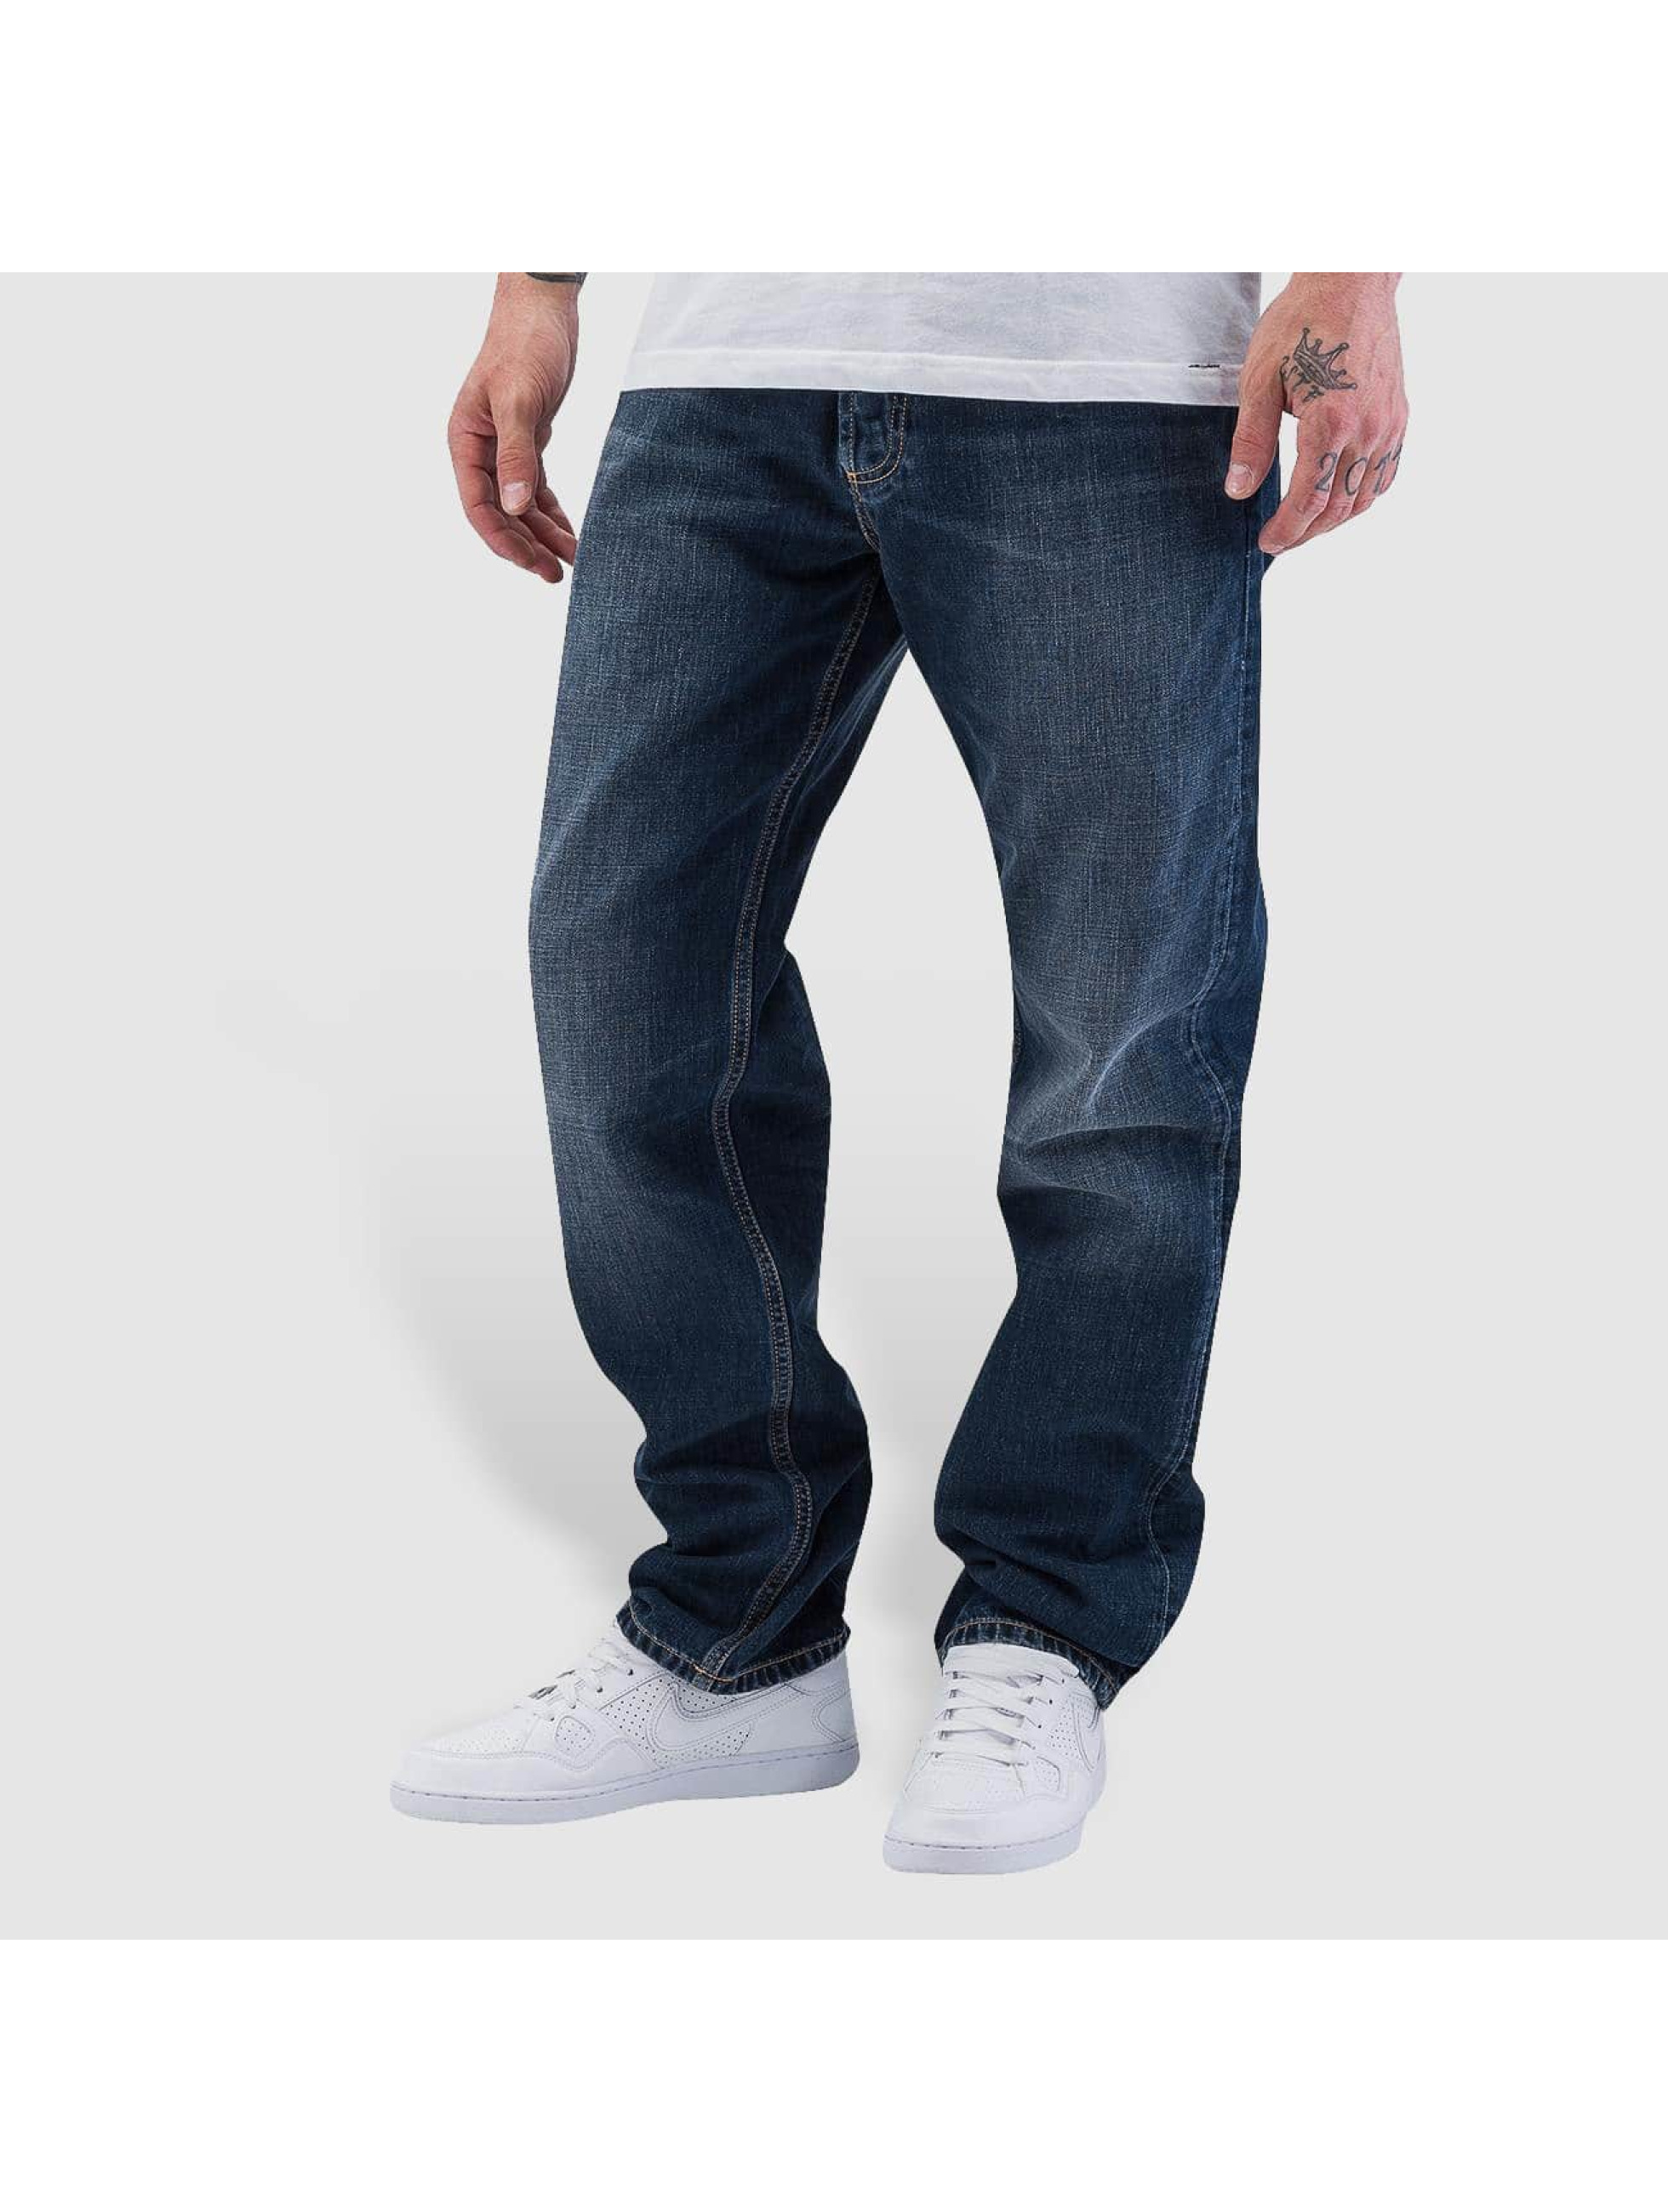 Carhartt WIP Otero Marlow Straight Fit Jeans Blue Natural Dark Wash Sale Angebote Hosena